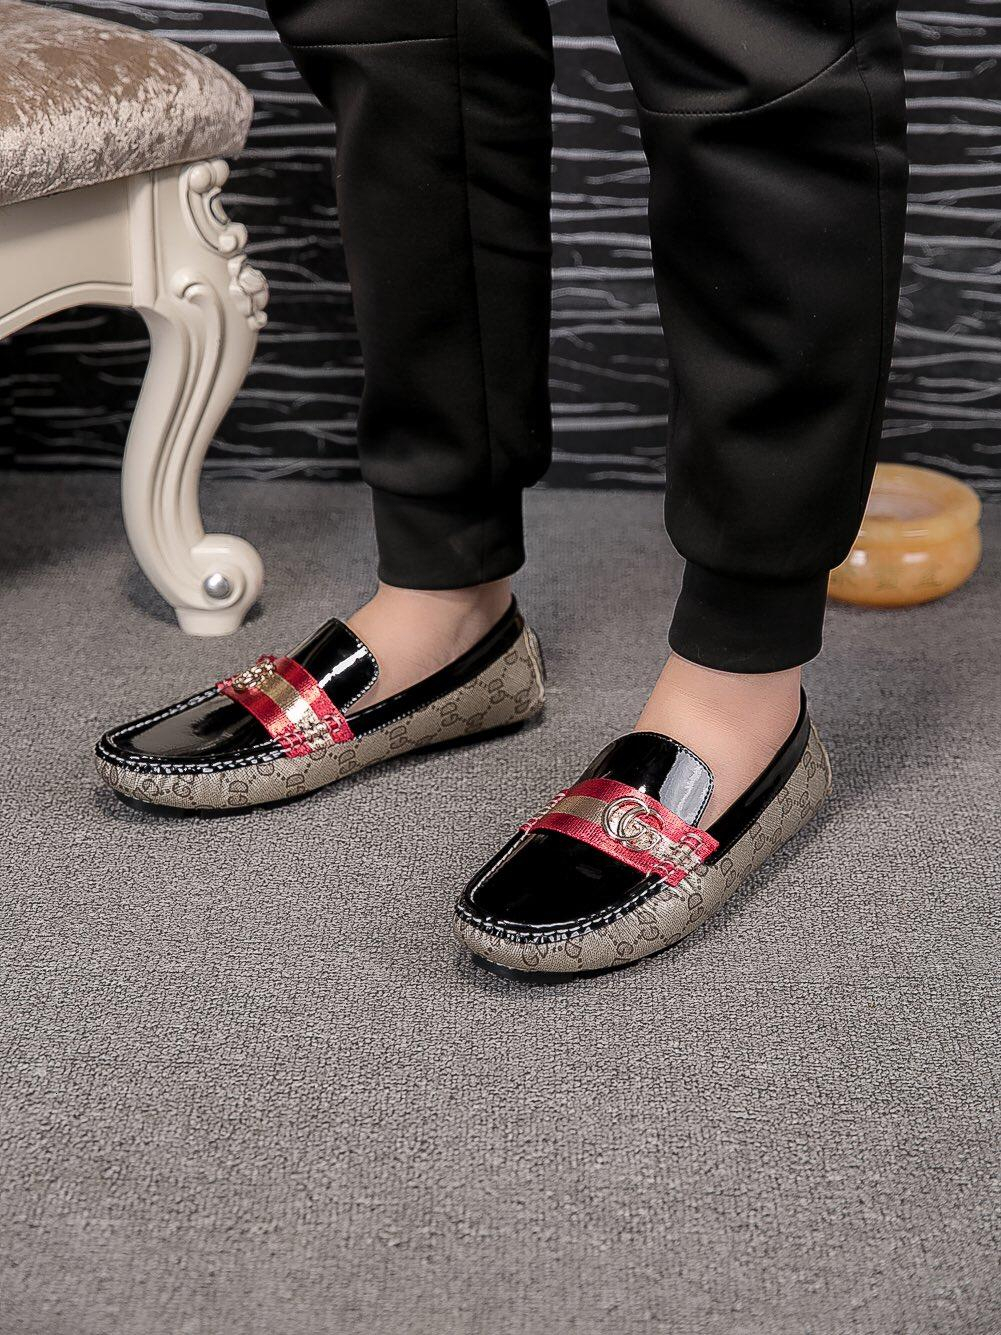 2018 New Casual Mens Shoes For Sneakers Fashion Sport Hot Corss Hiking Jogging Walking Outdoor no box